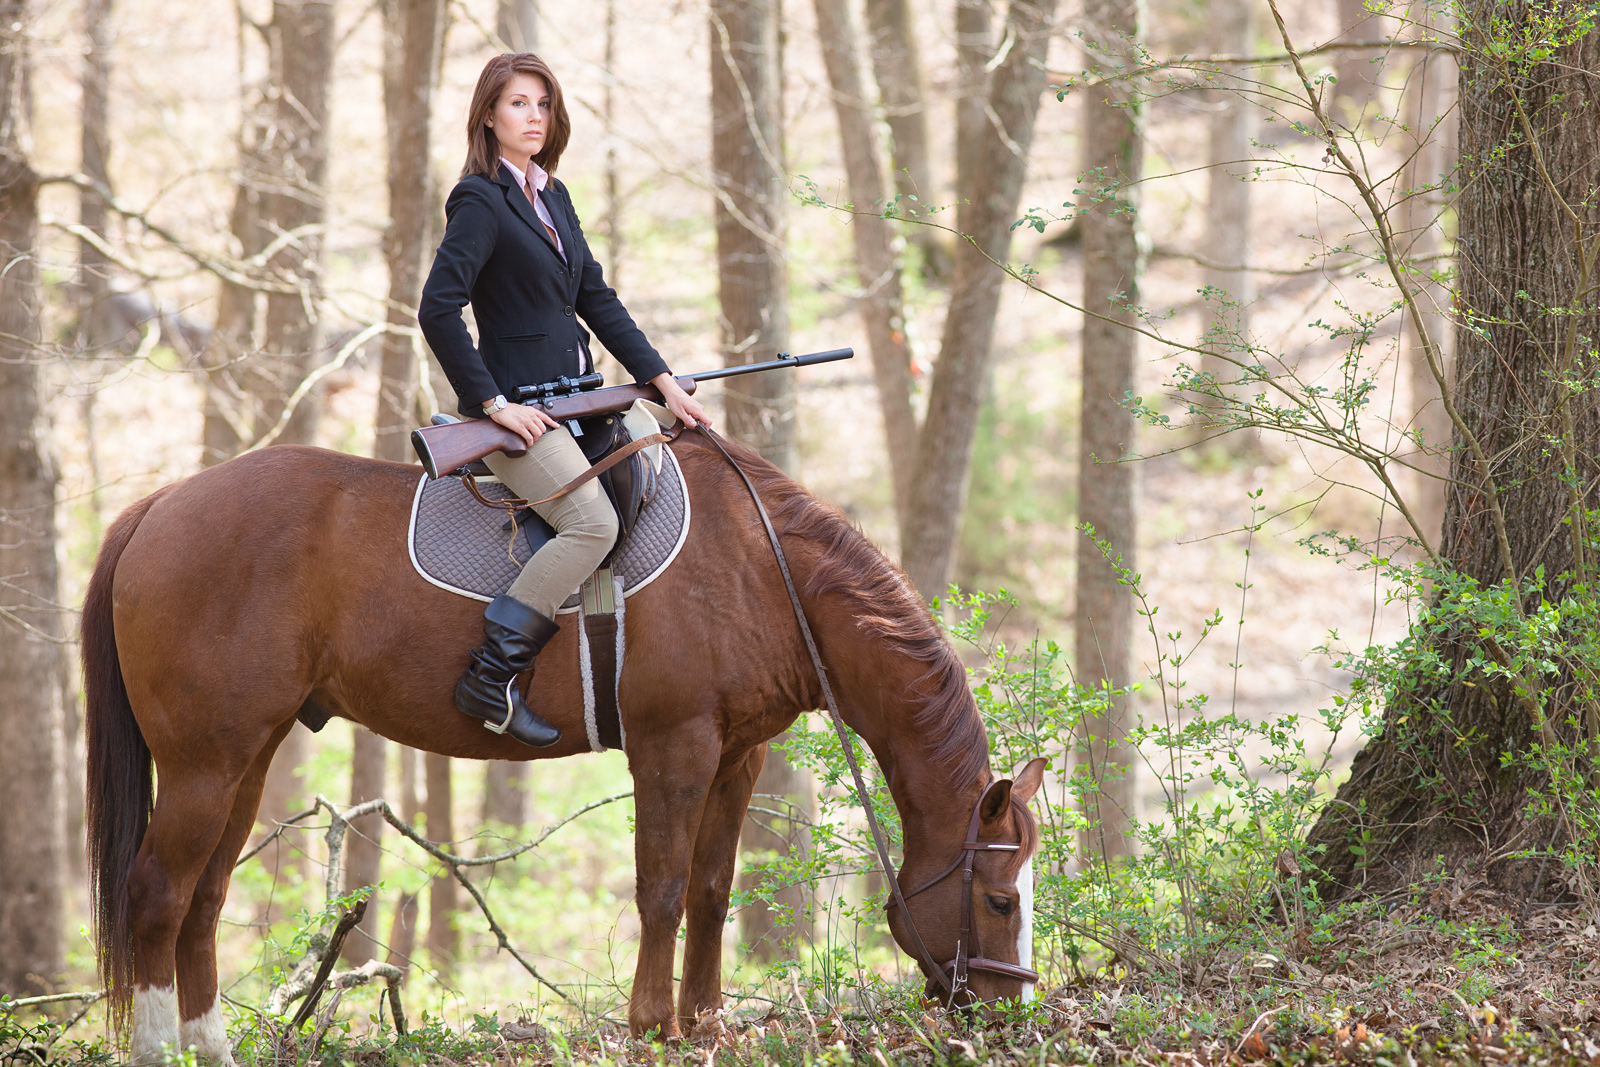 suppressed_rifle_horseback_3885web